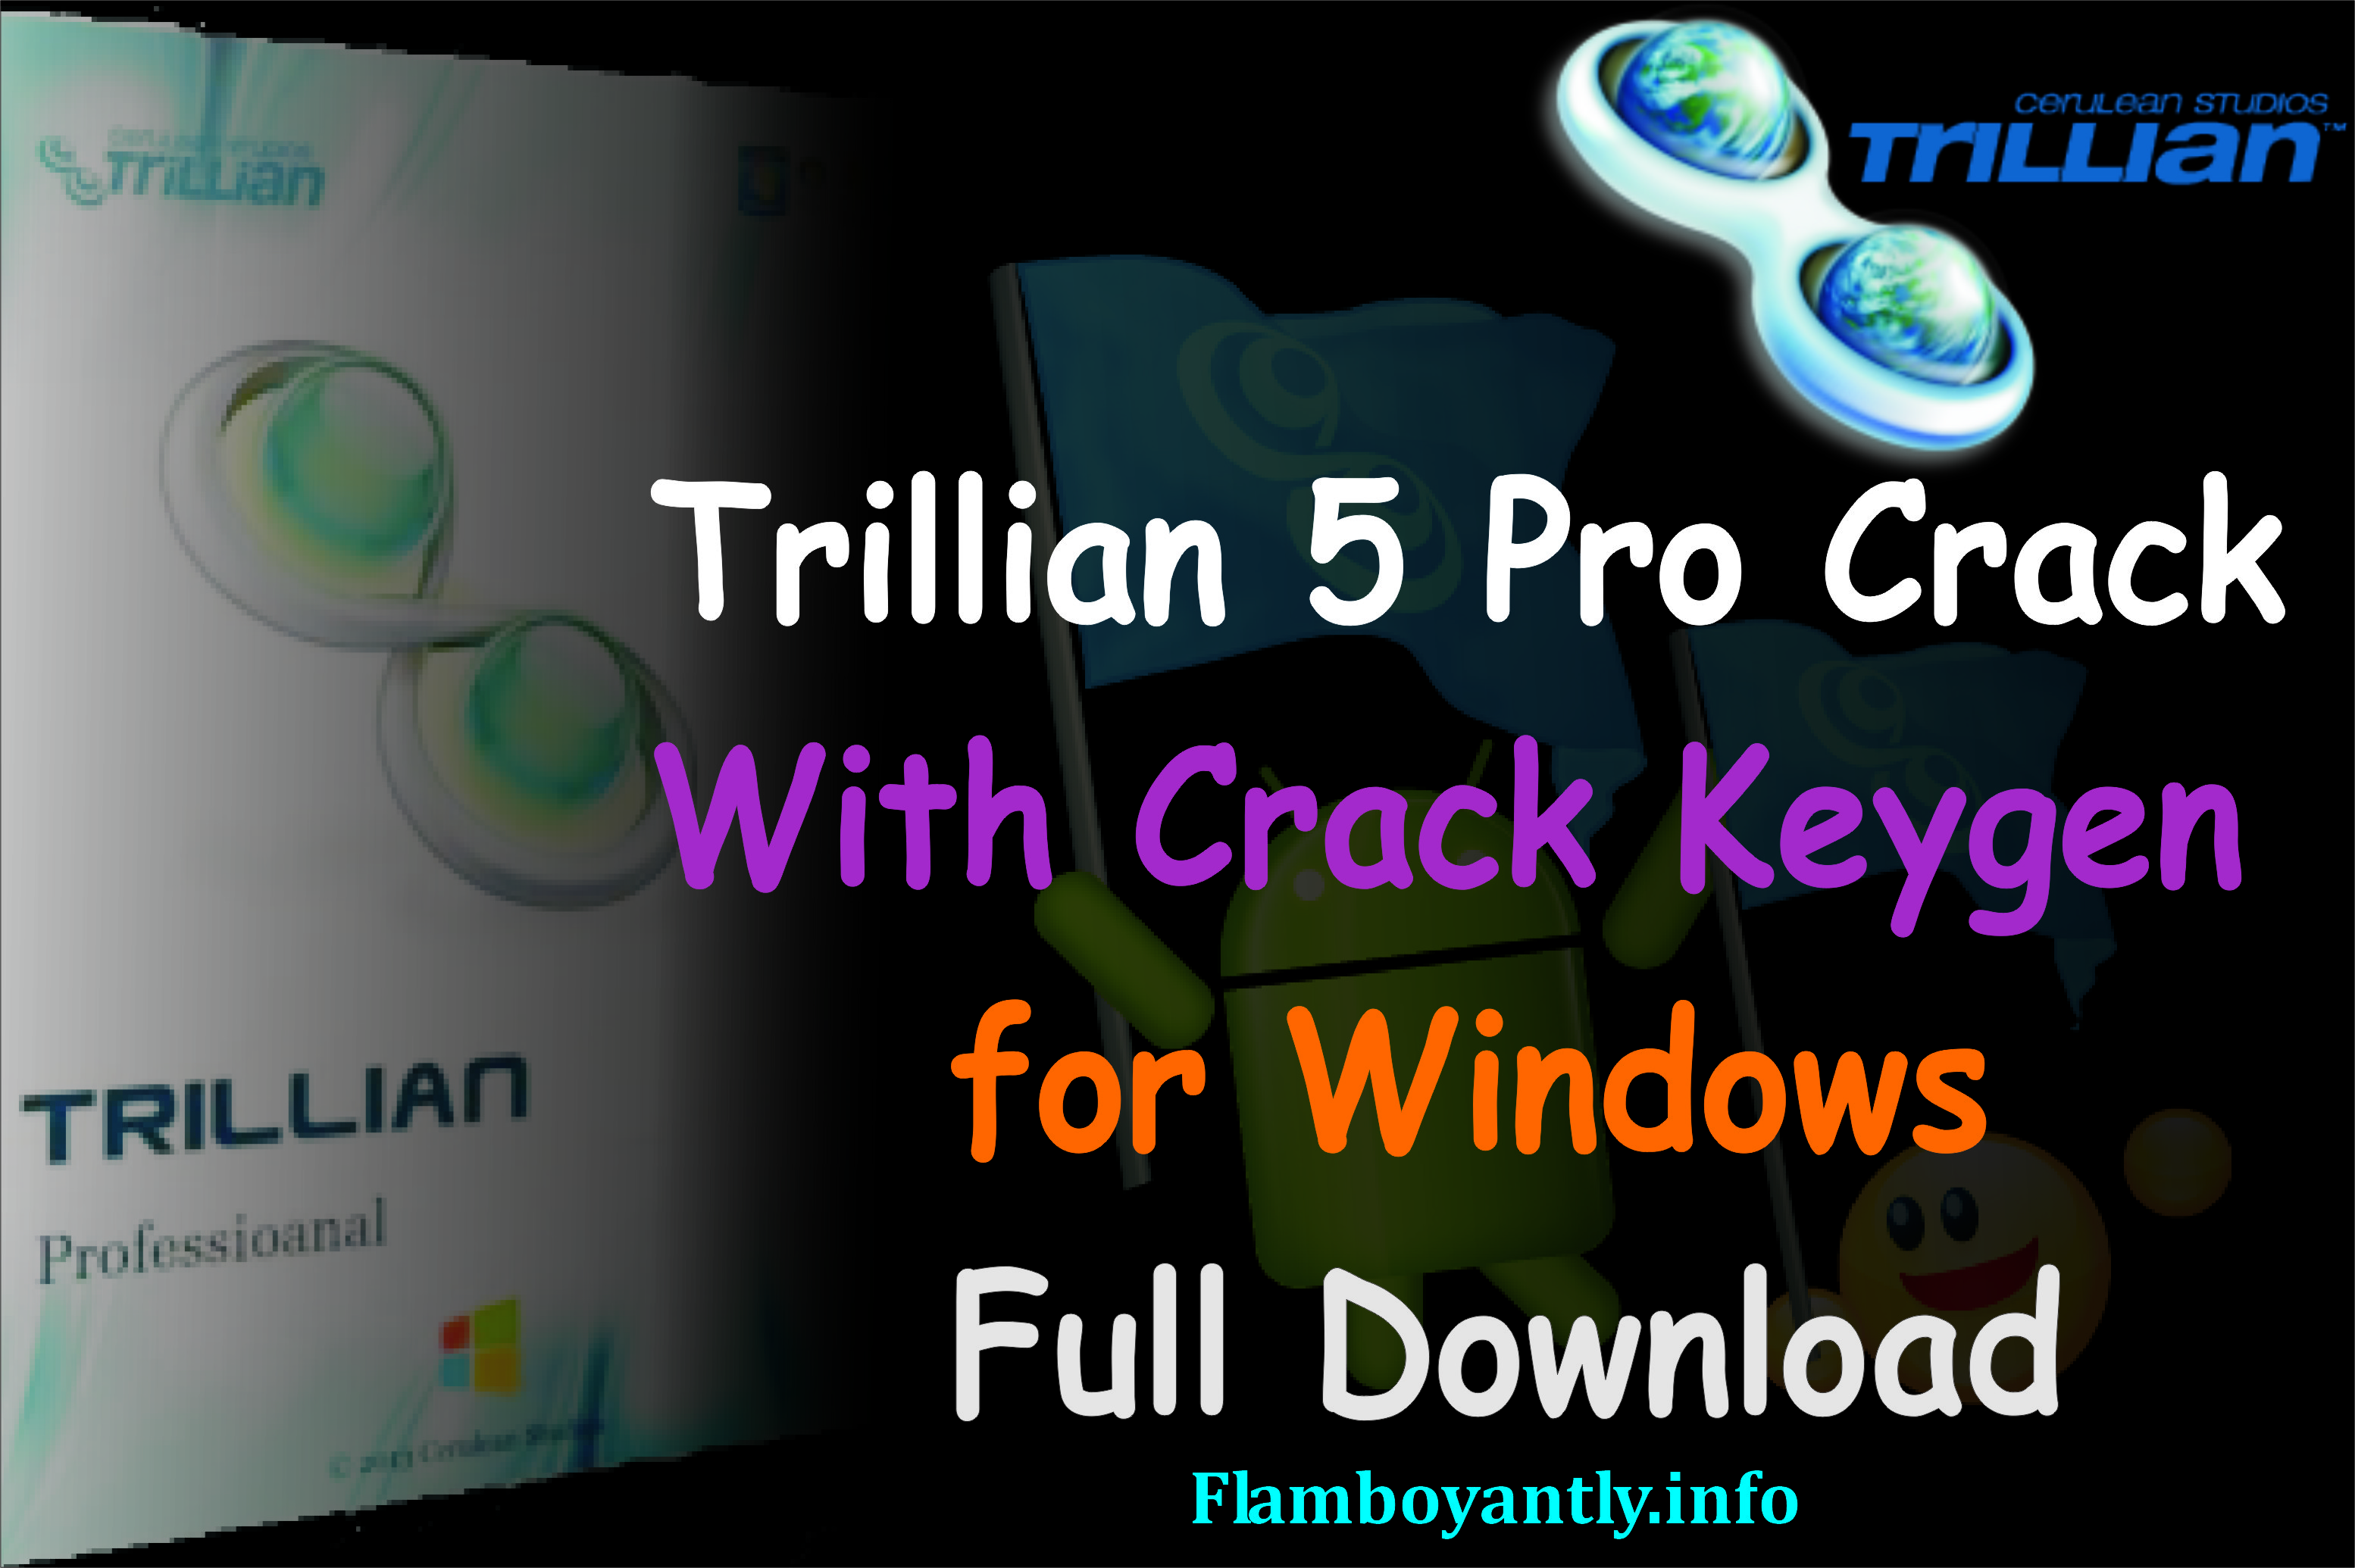 Trillian 5 Pro Crack With Crack Keygen for Windows Full Download